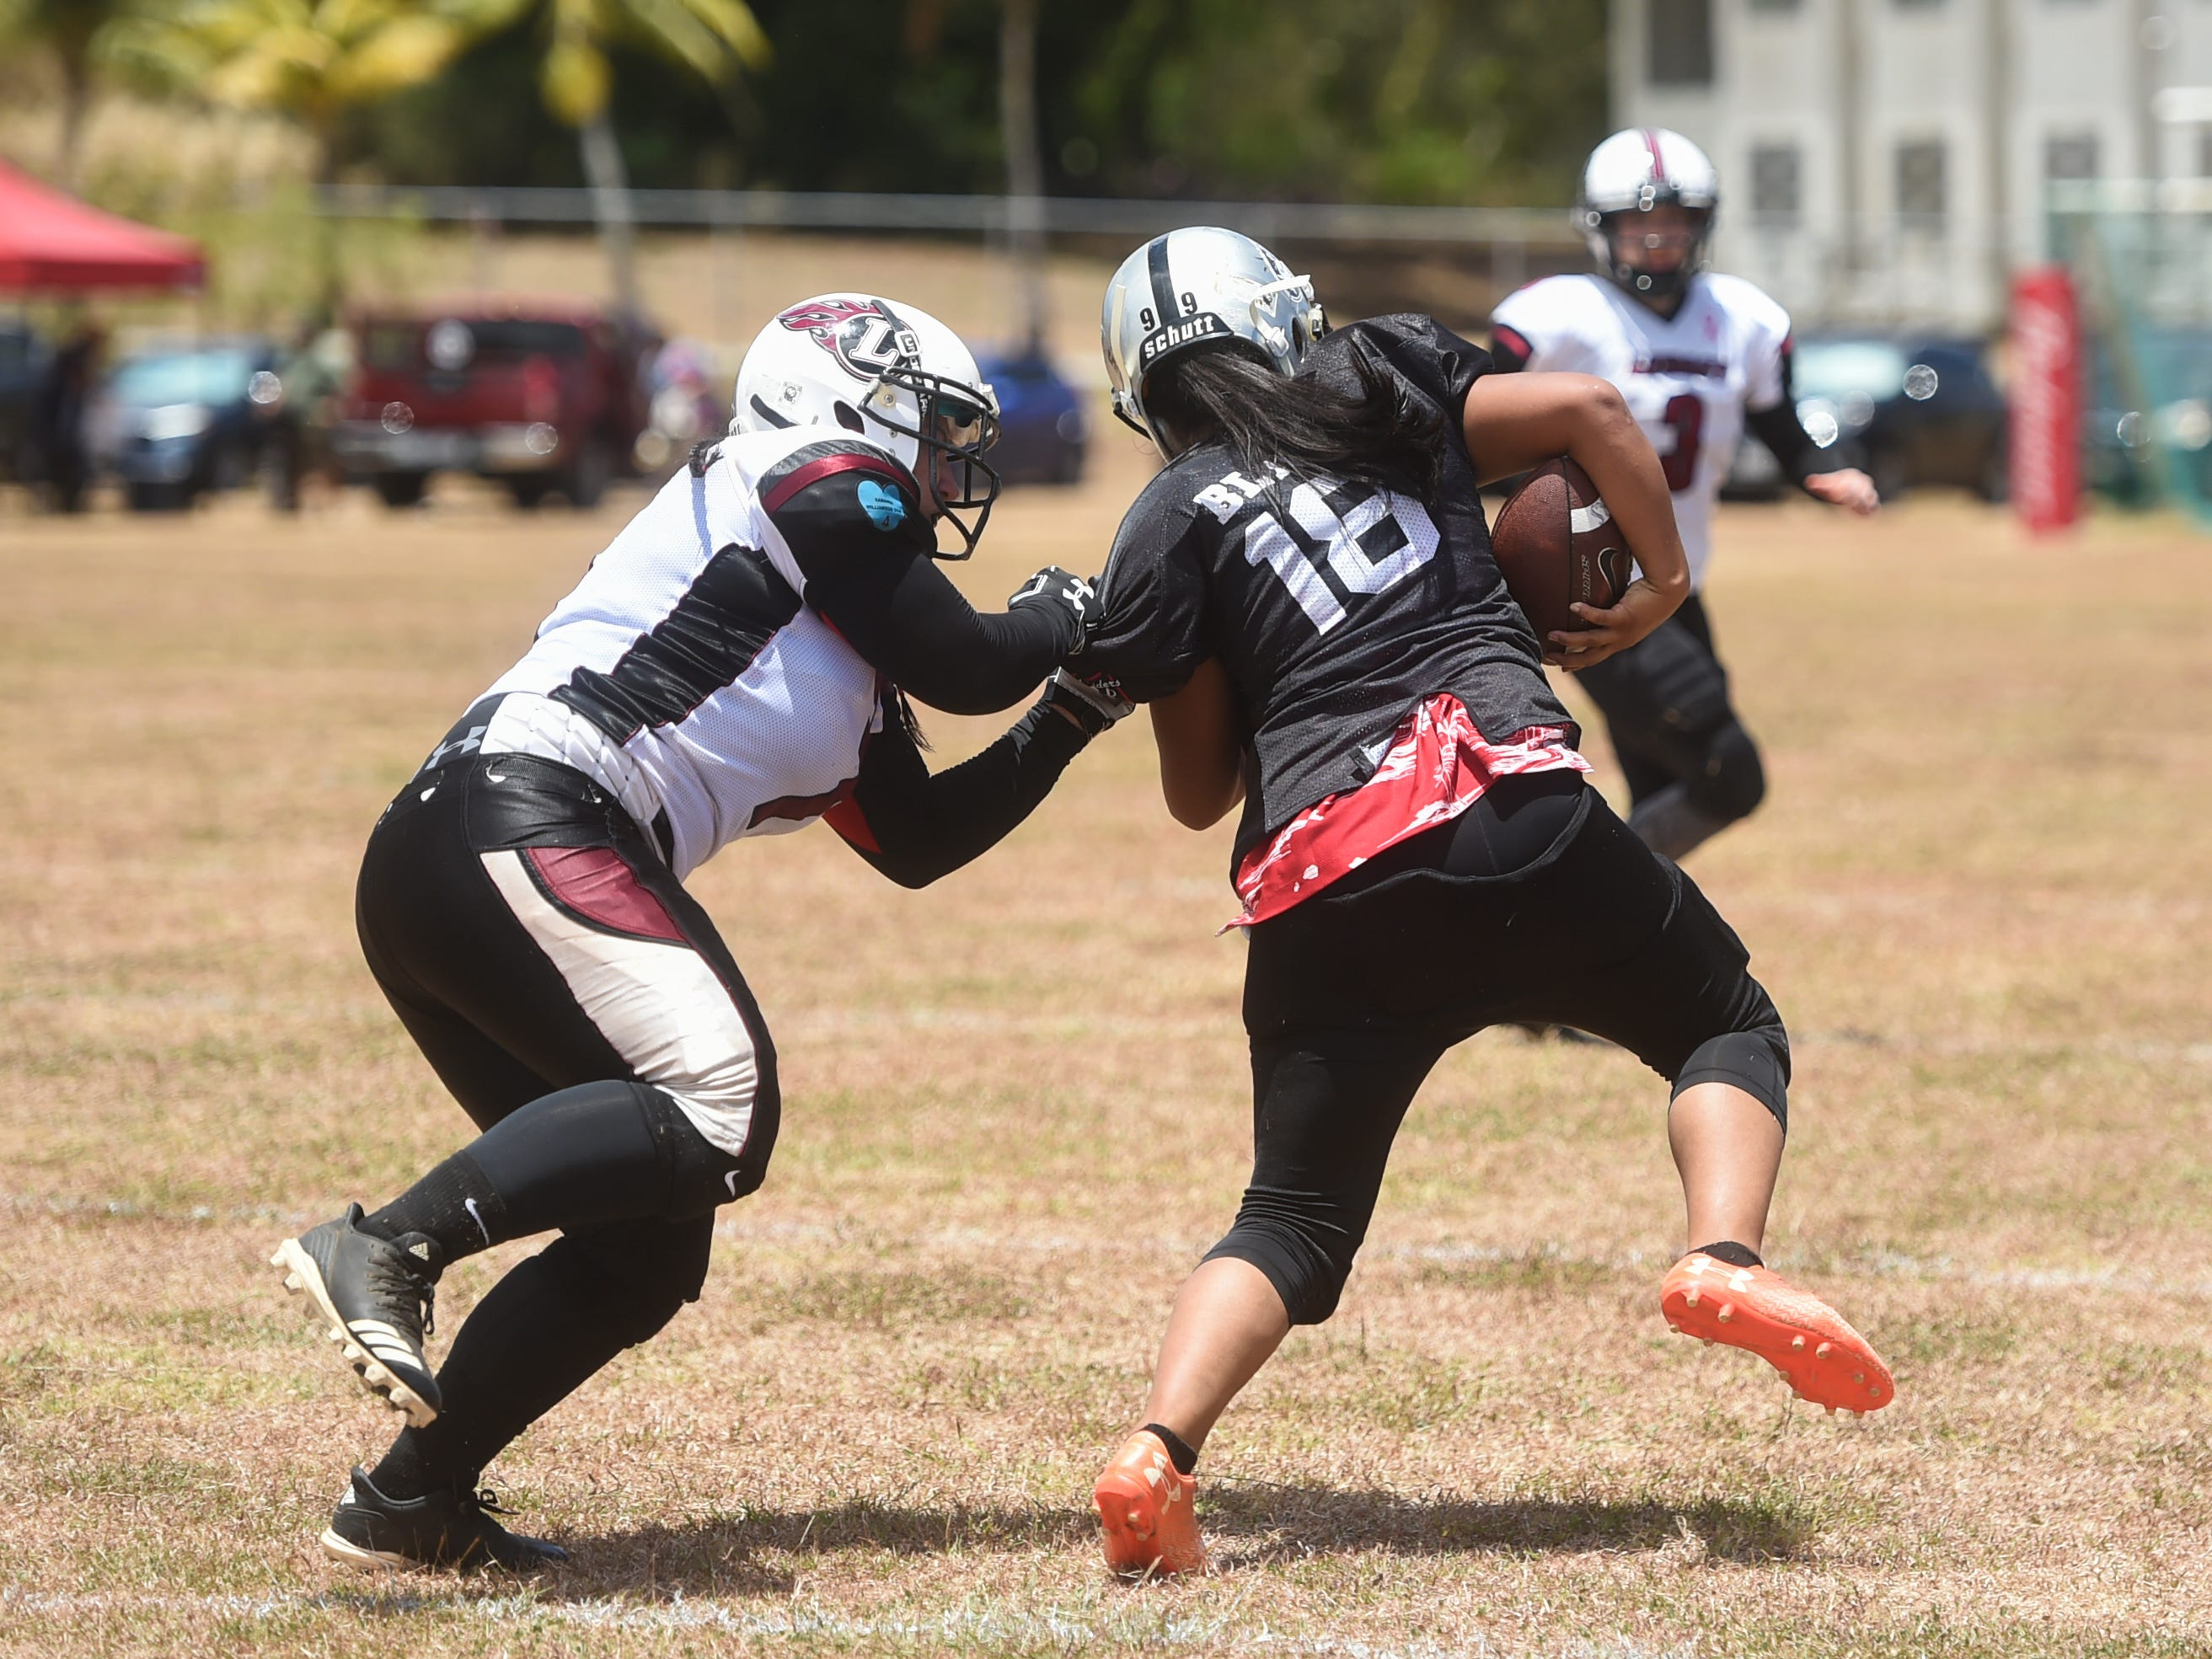 Sindalu/Raiders' Leticia Blas (18) is grabbed by Legacy's Ashley Arceo during their 2019 Bud Light GWTFL game at the University of Guam Field in Mangilao, May 11, 2019. Legacy came away with a 20-0 victory for their second game of the season.